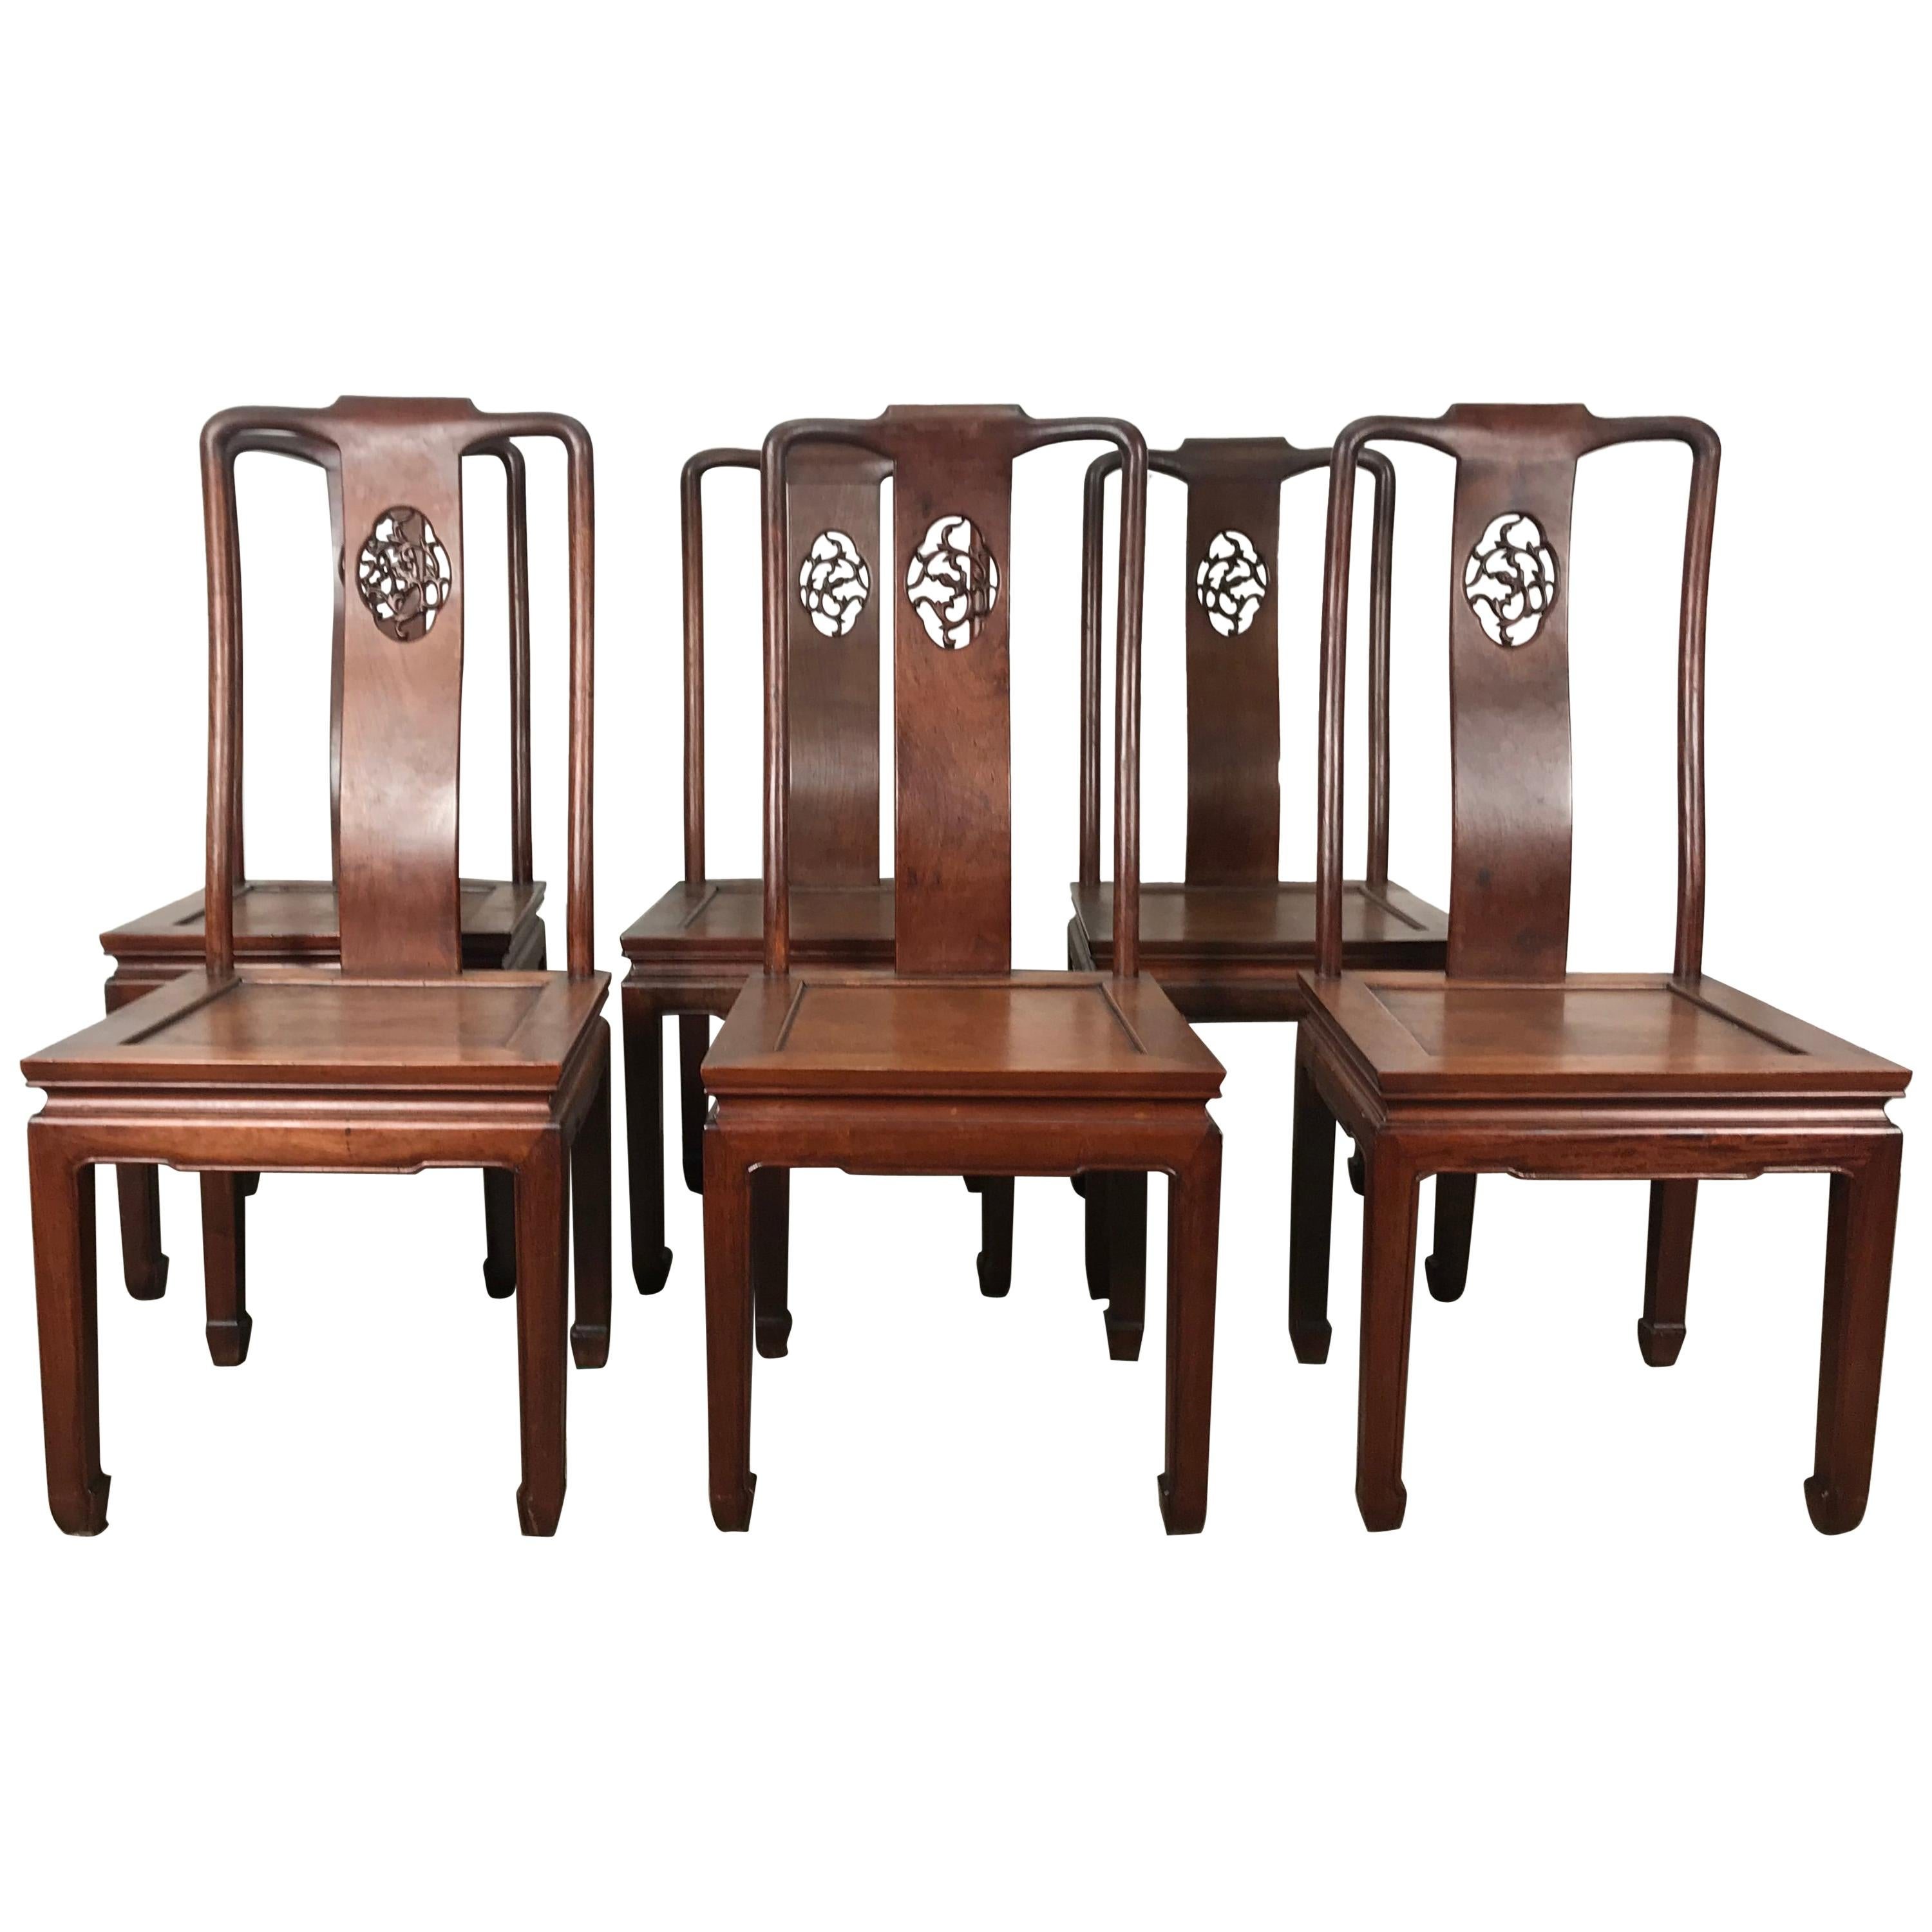 Set of 6 Asian Modern Solid Rosewood Dining Chairs